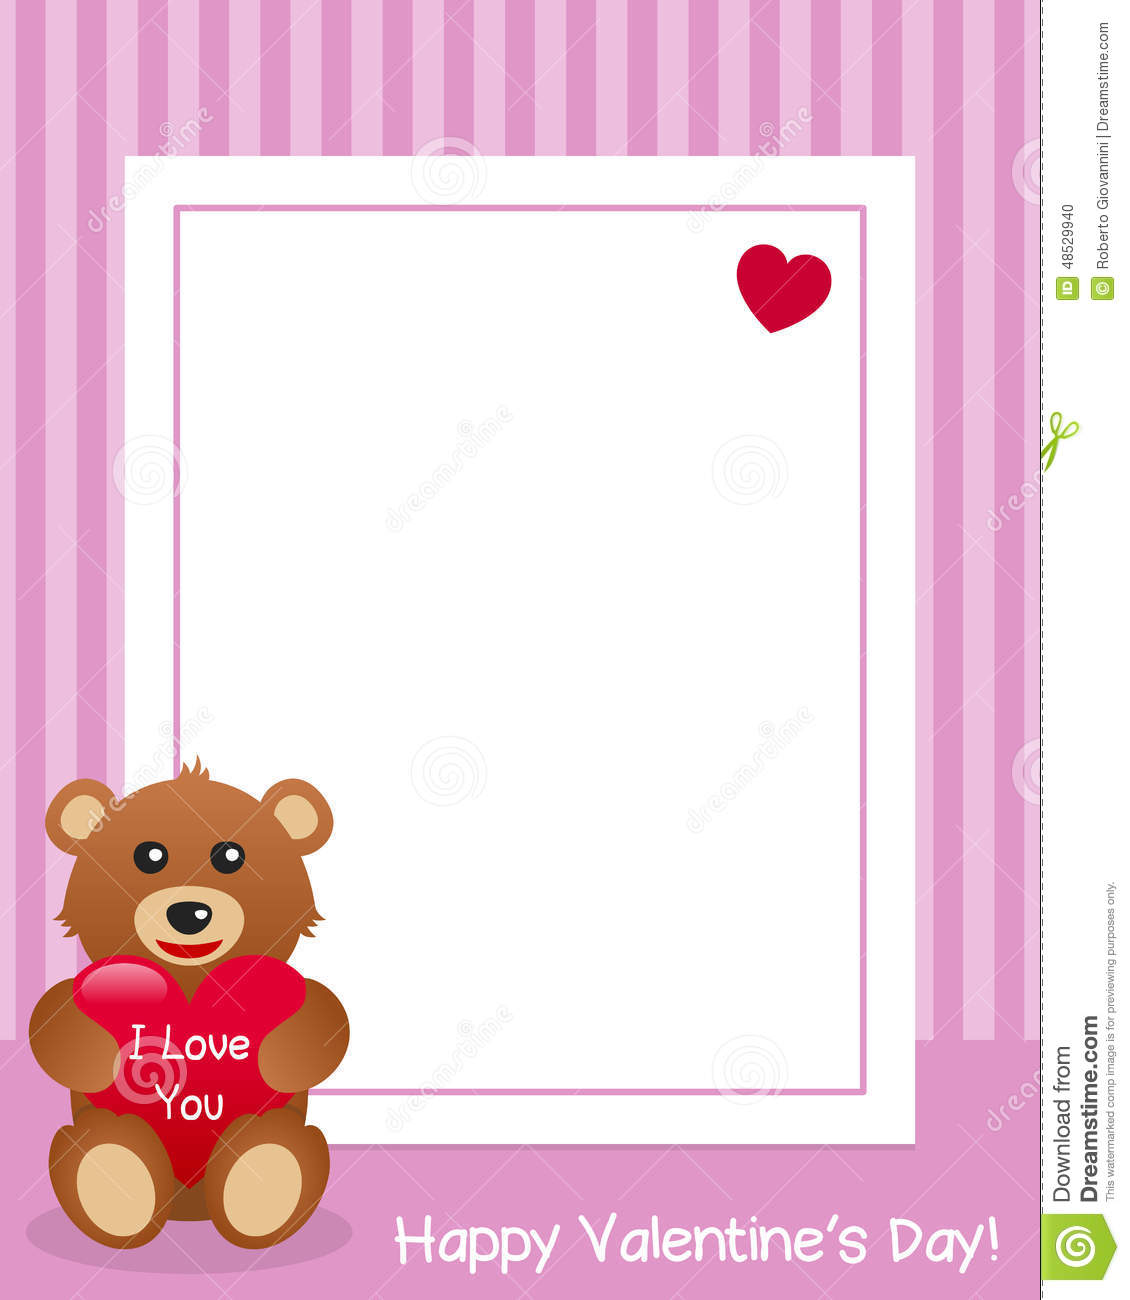 I Love You Teddy Bear Vertical Frame Stock Vector - Illustration of ...